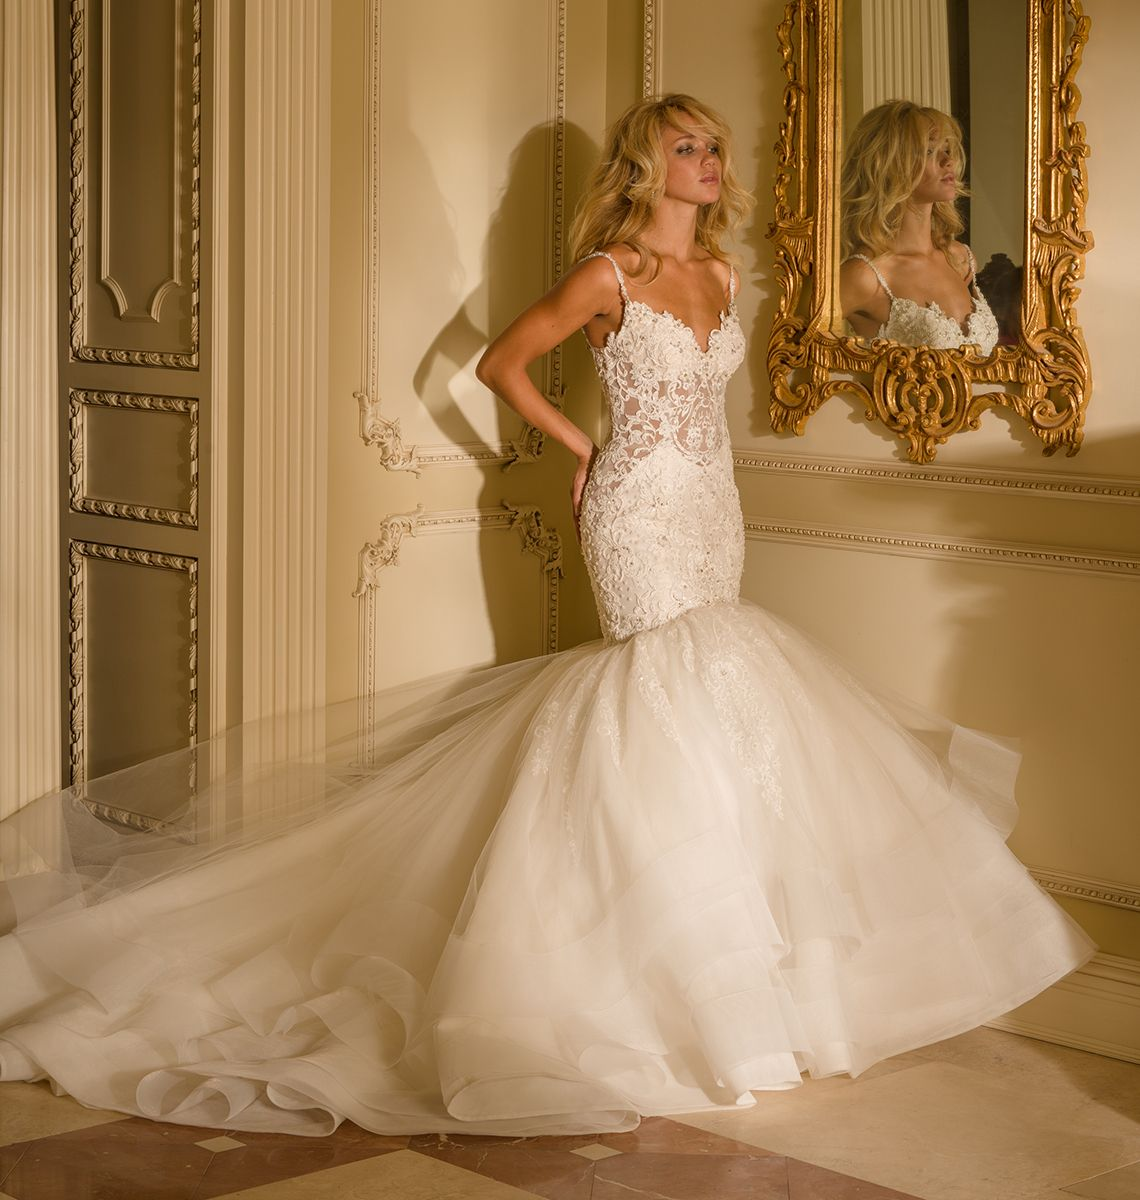 bridals by lori - Eve of Milady 0130194, In store (http://shop.bridalsbylori.com/eve-of-milady-0130194/)